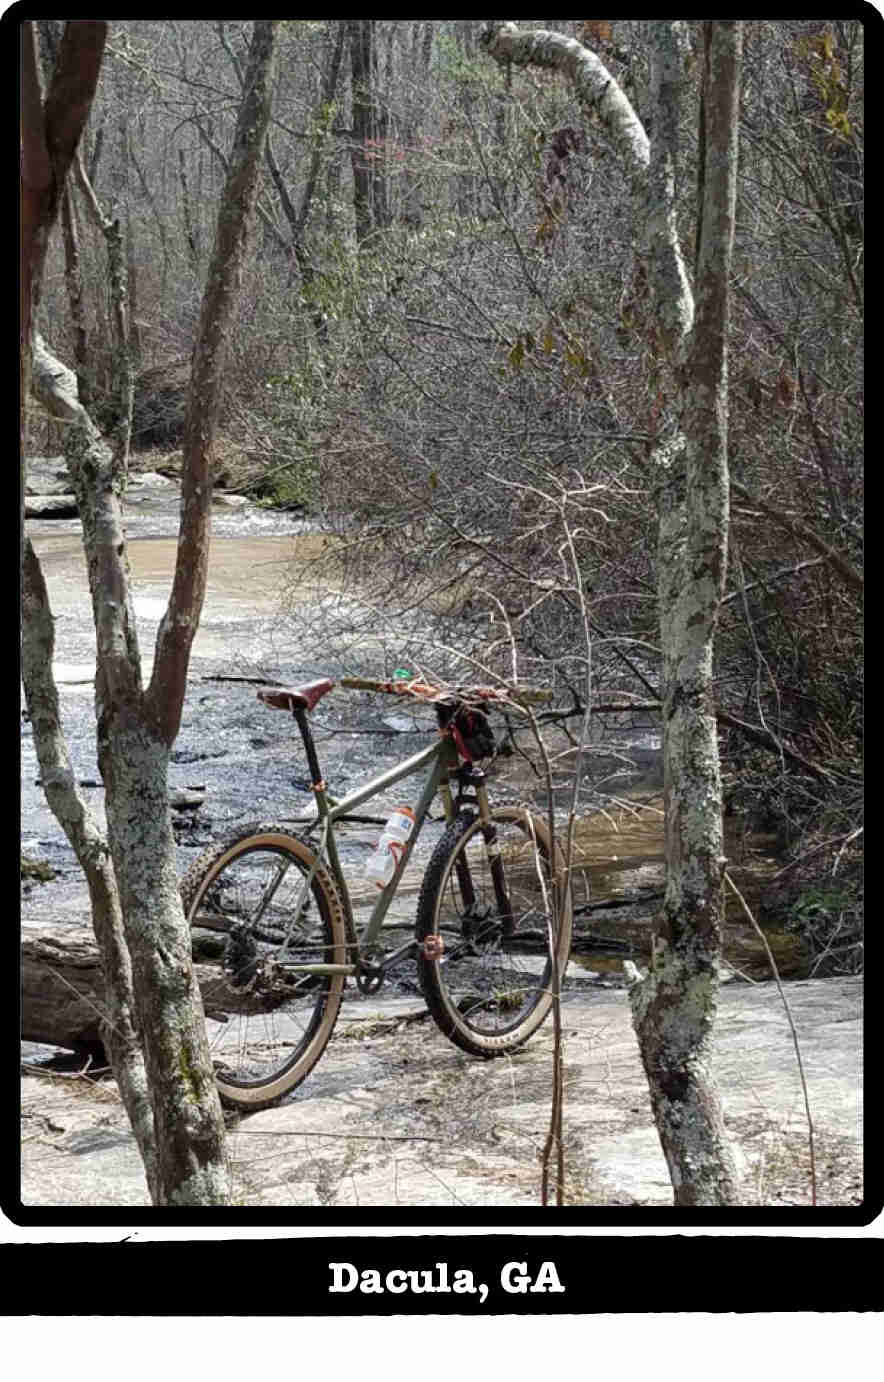 Right rear view of a Surly Karate Monkey bike, olive, at a flat rock on a river bank - Dacula, GA tag below image